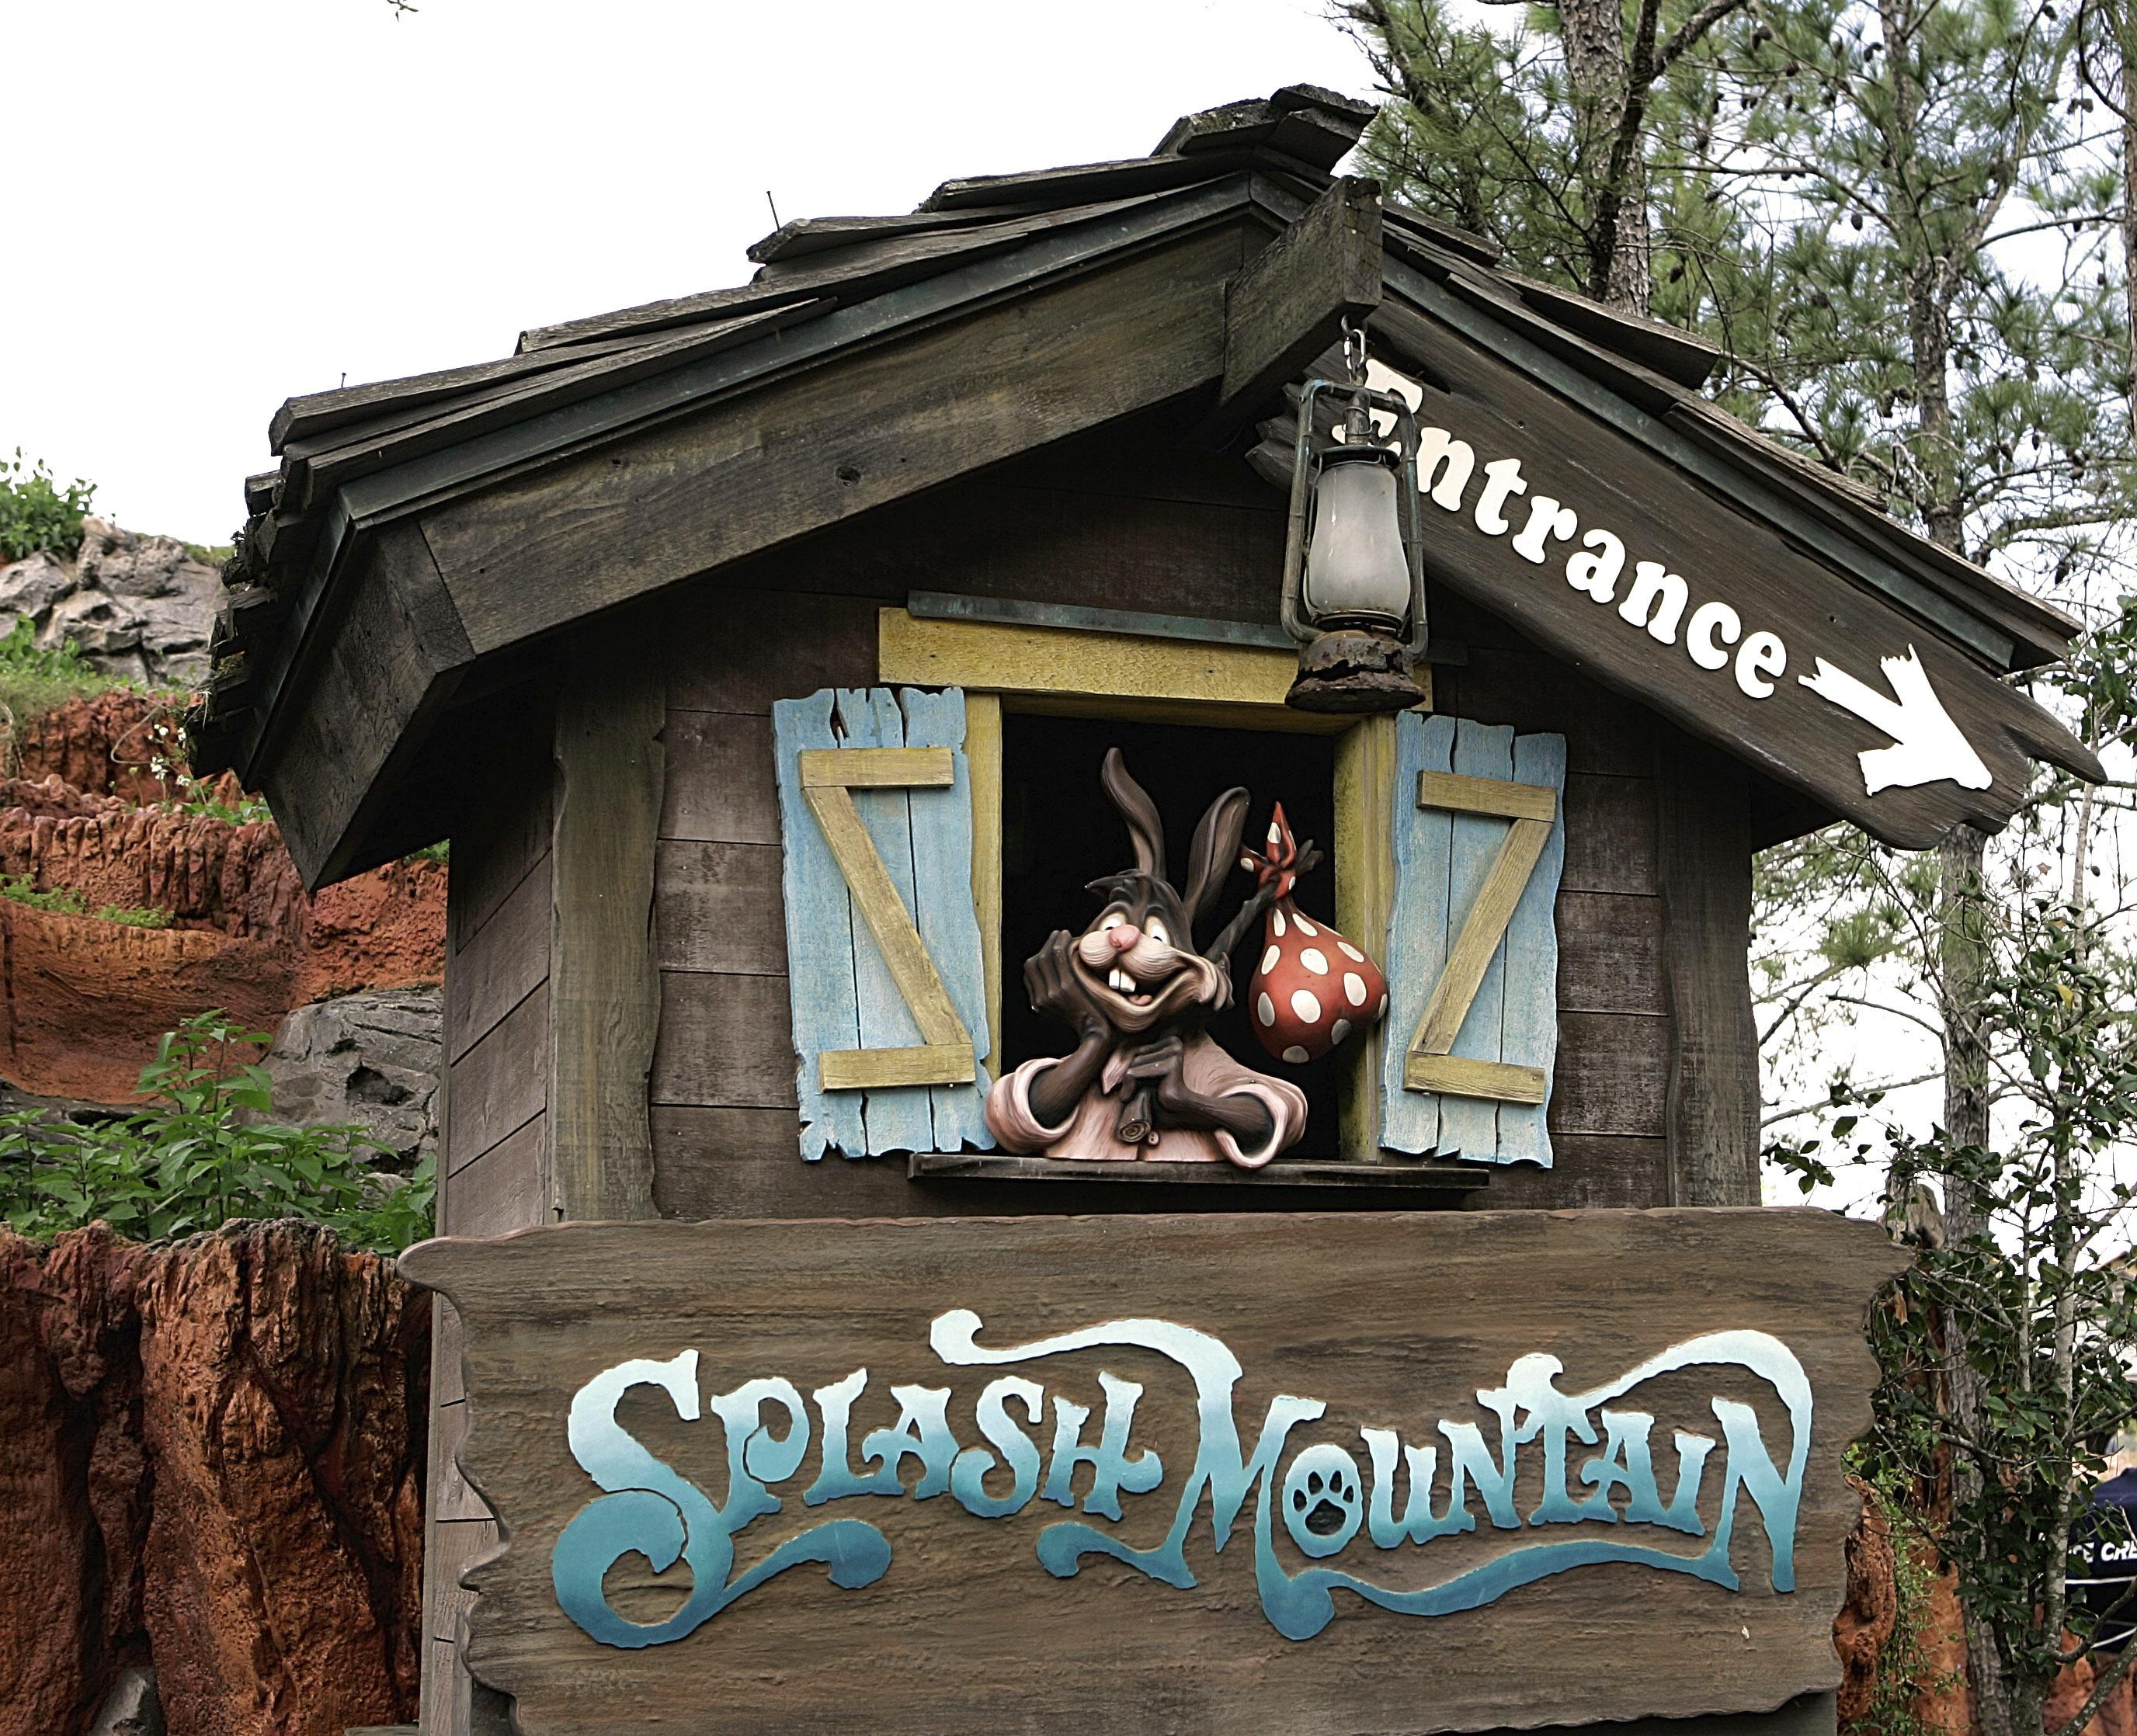 Disney World  wokeness  column on Splash Mountain, Jungle Cruise, other changes stirs Twitter debate